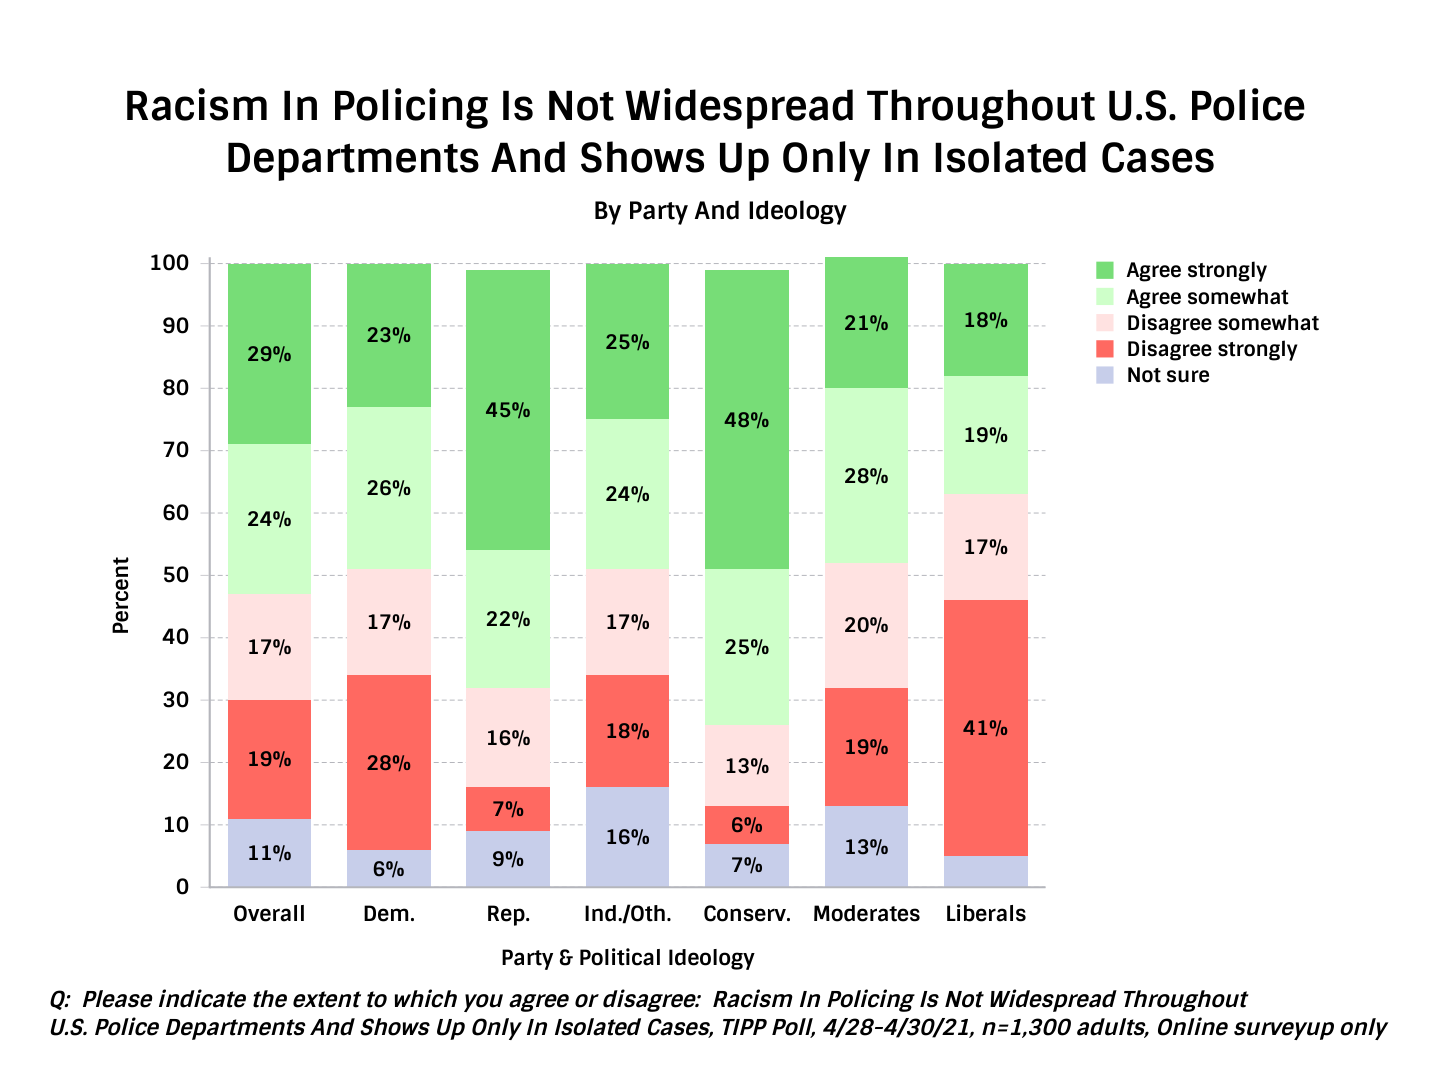 TIPP Poll Asking Americans How Pervasive Is Racism In The Police Along Party Lines - Chart